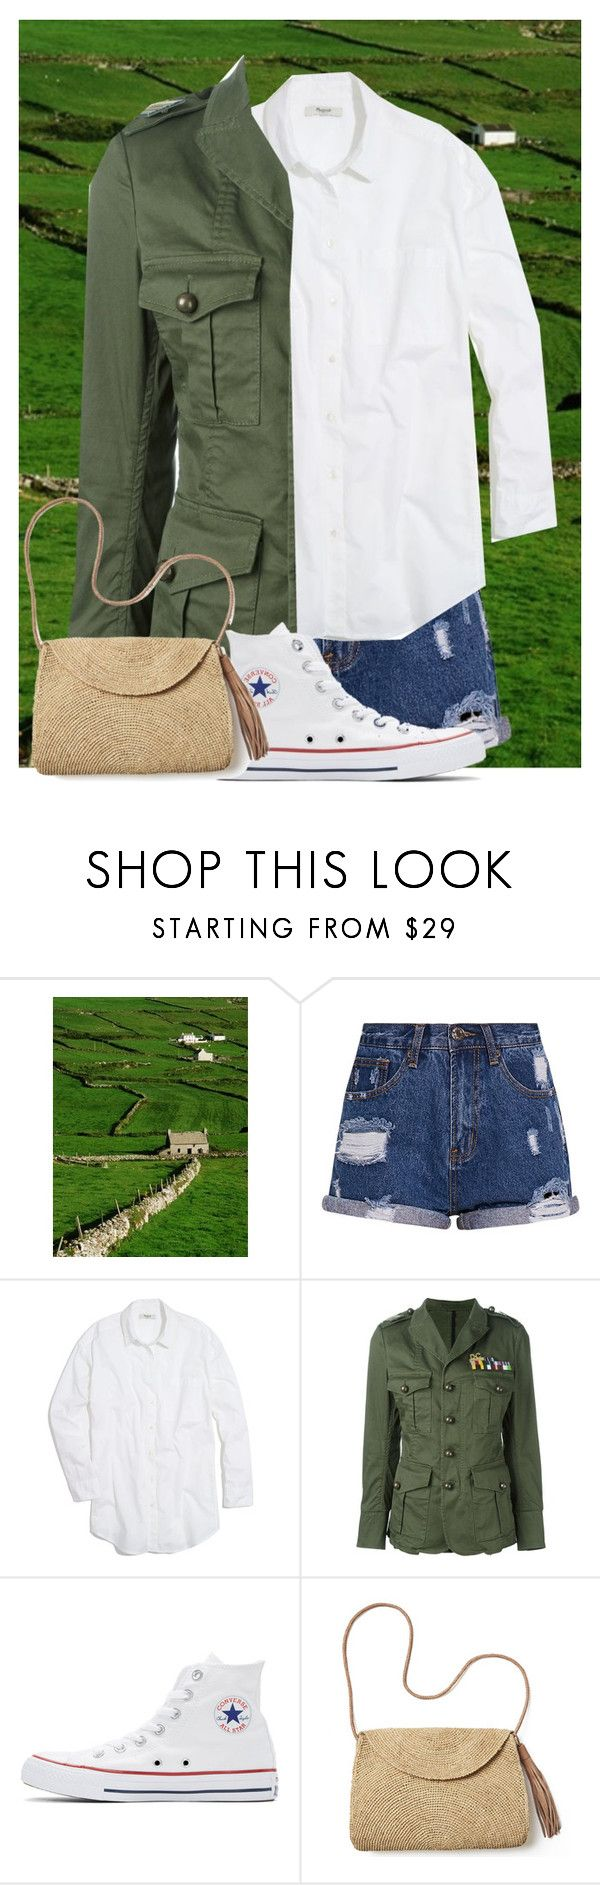 """""""Irish Luck"""" by eb-case ❤ liked on Polyvore featuring Madewell, Dsquared2, Converse and Mar y Sol"""